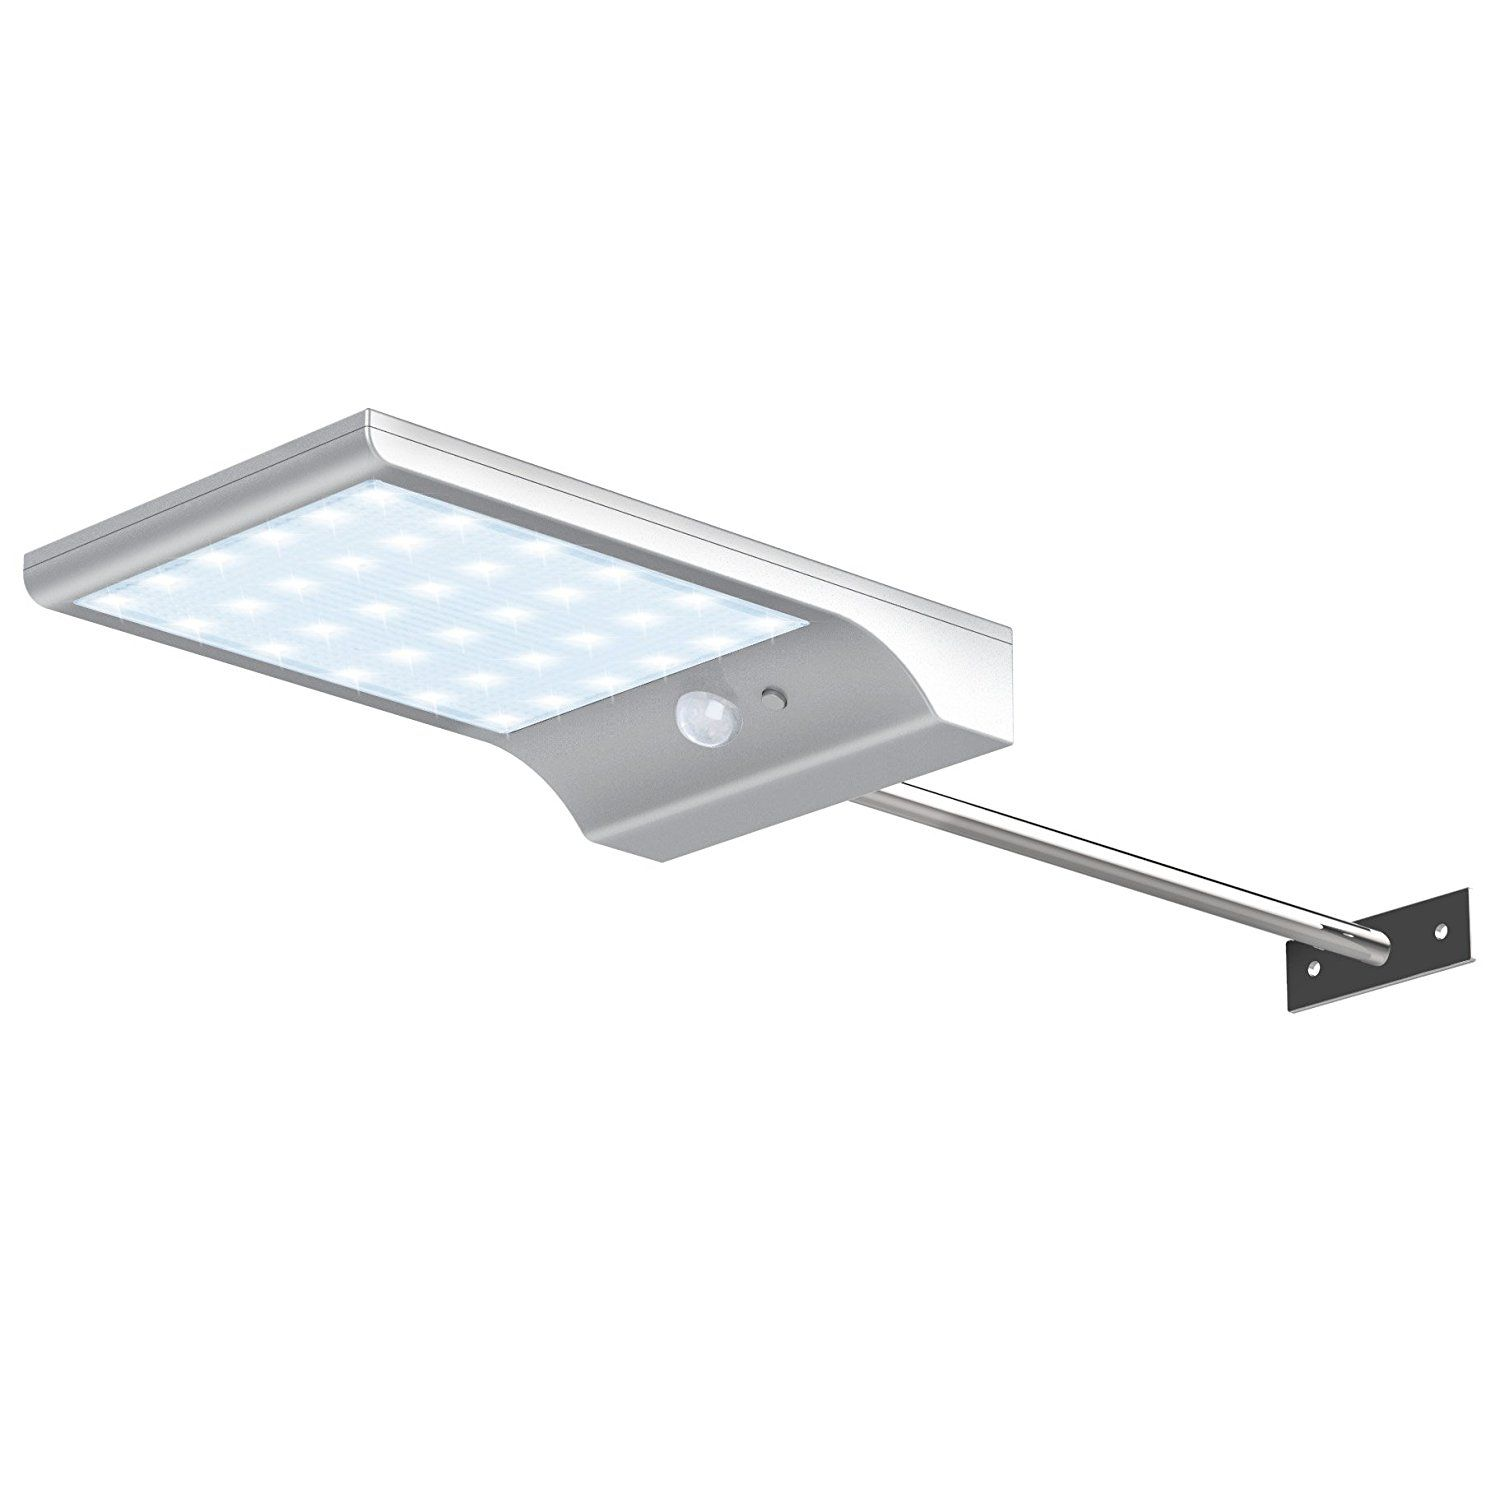 Innogear solar gutter lights with mounting pole outdoor motion